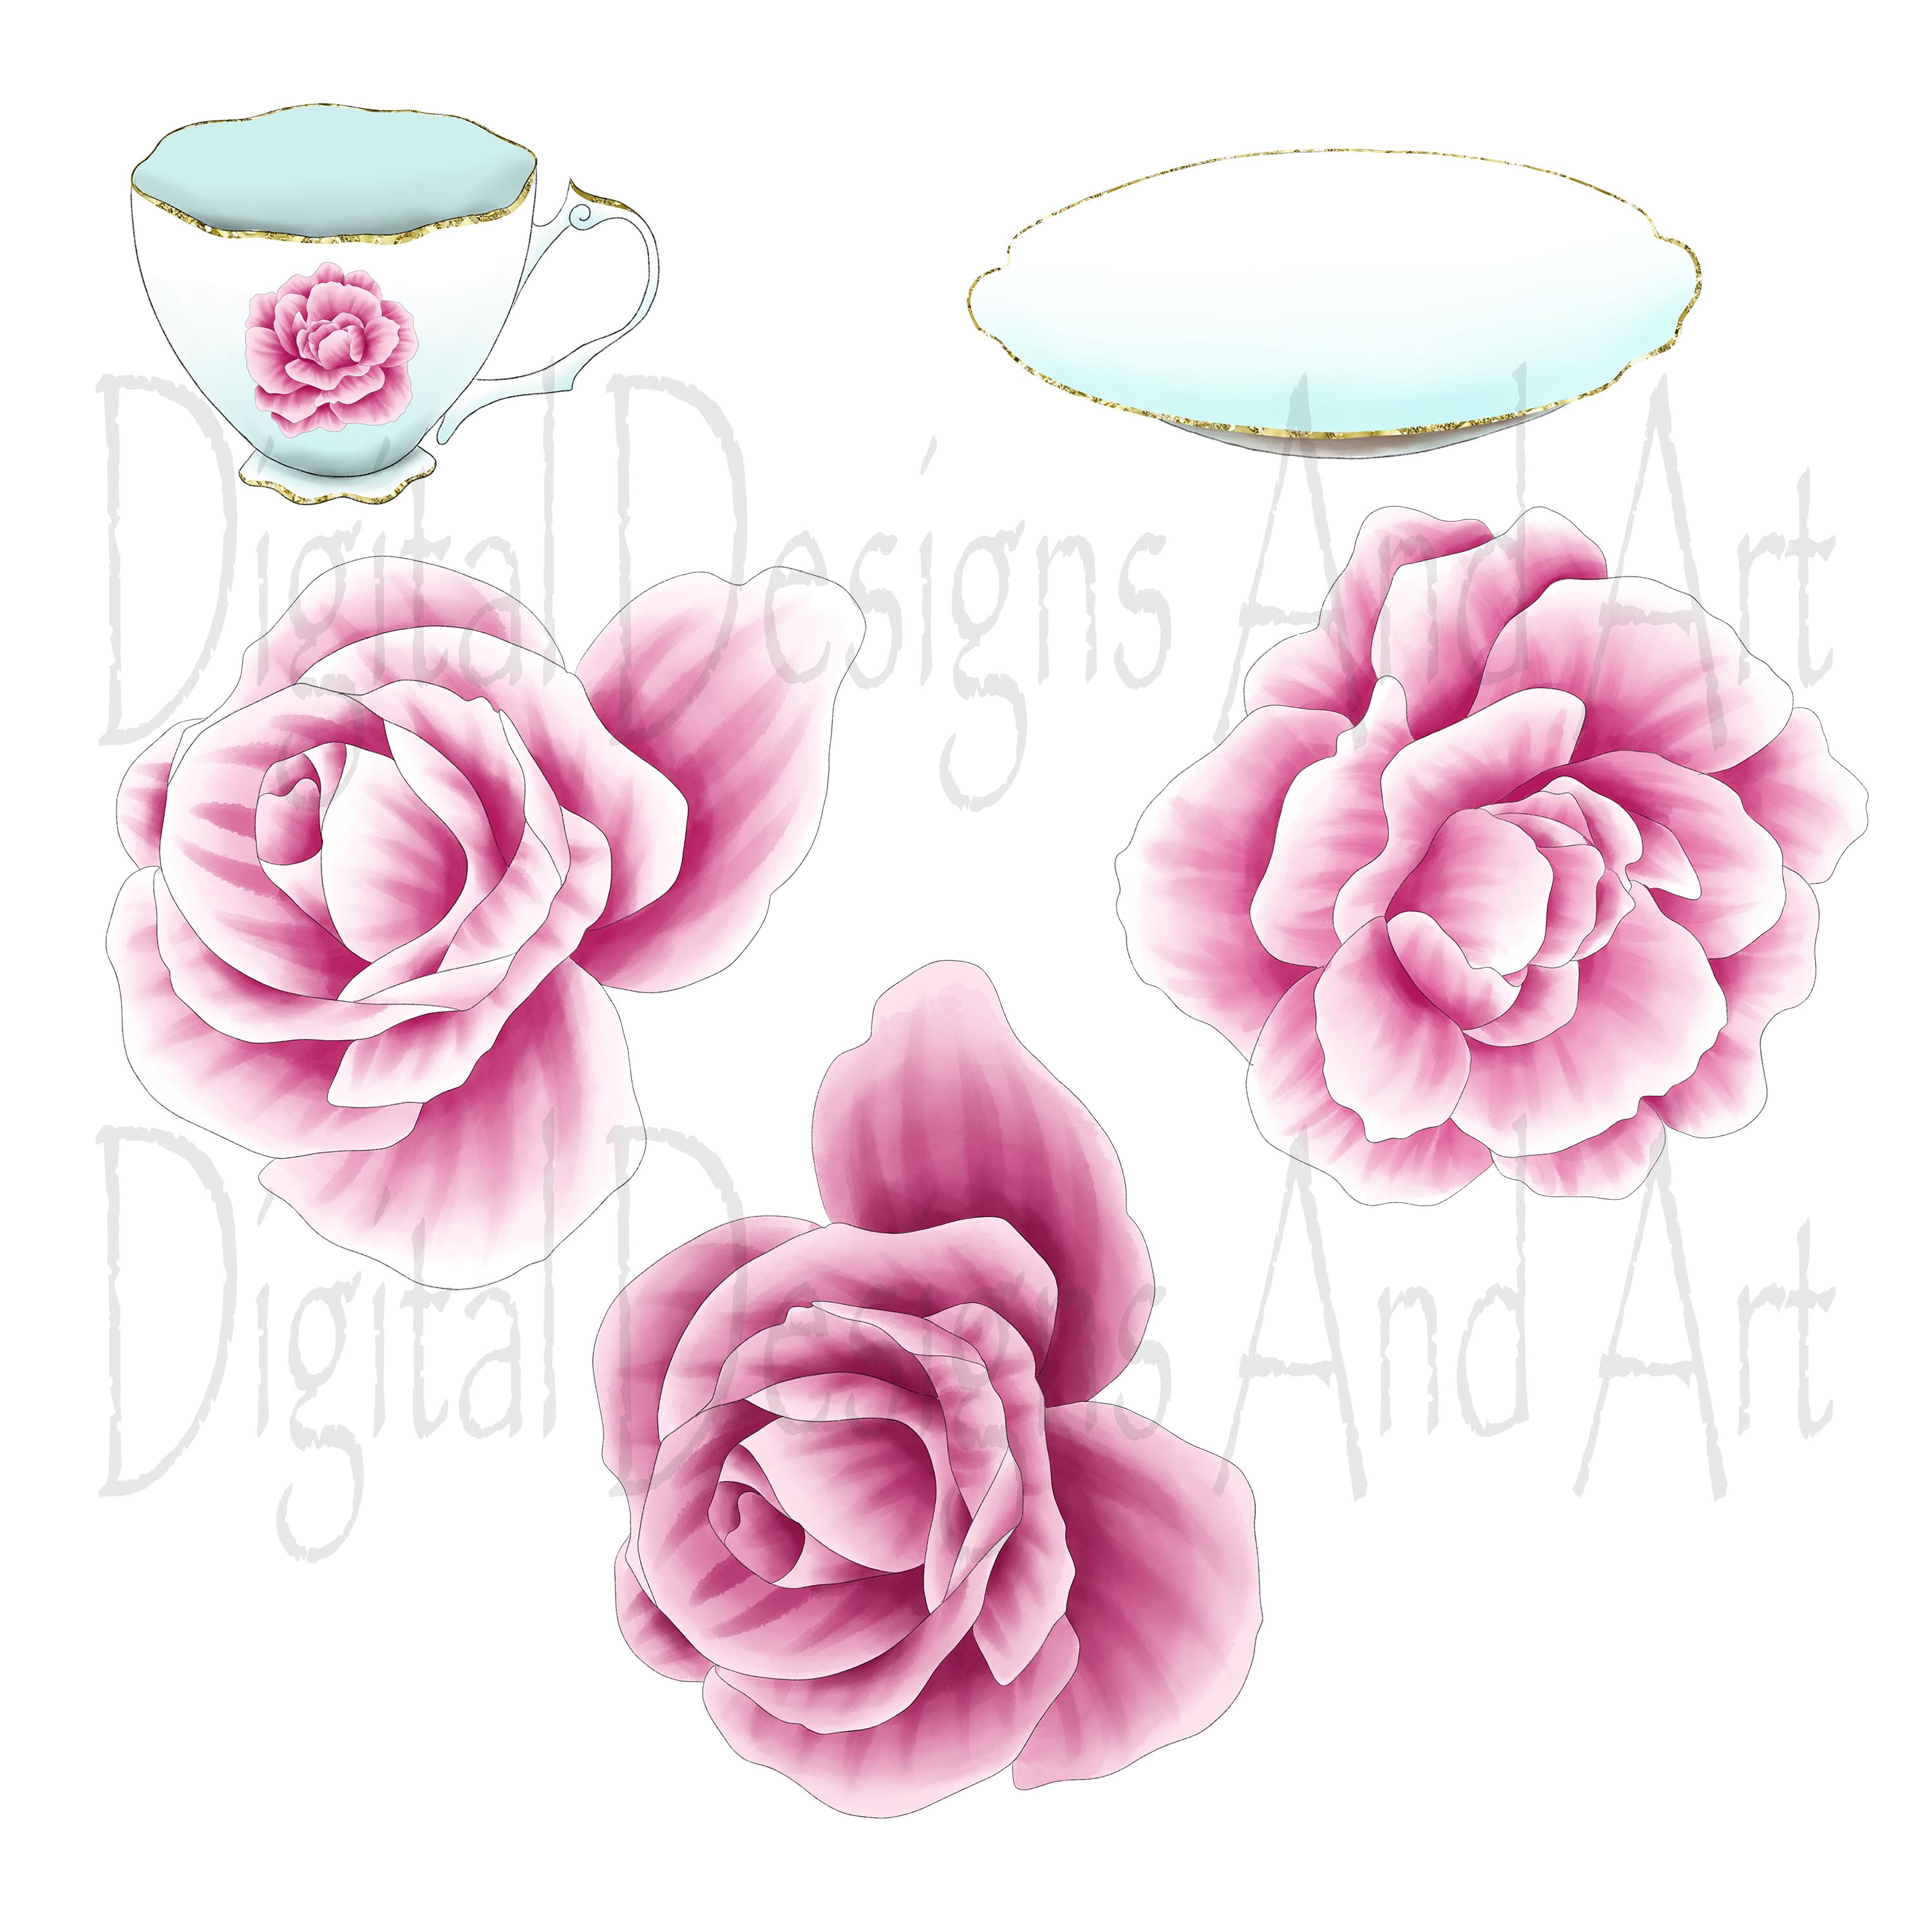 Afternoon tea clipart example image 4